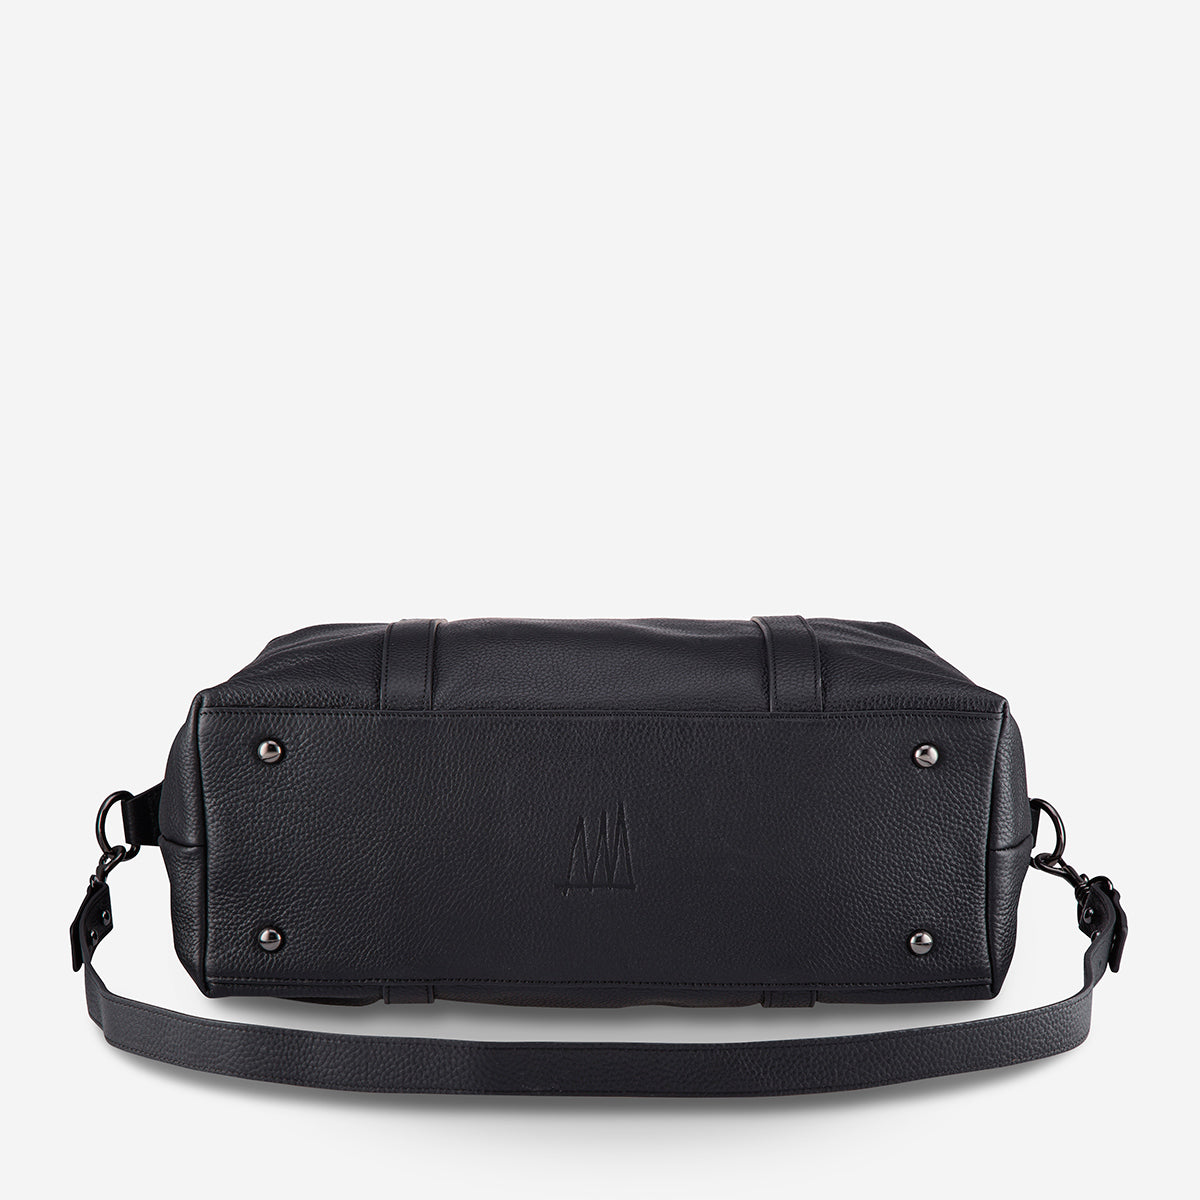 Status Anxiety Love and Lies Leather Bag - Black